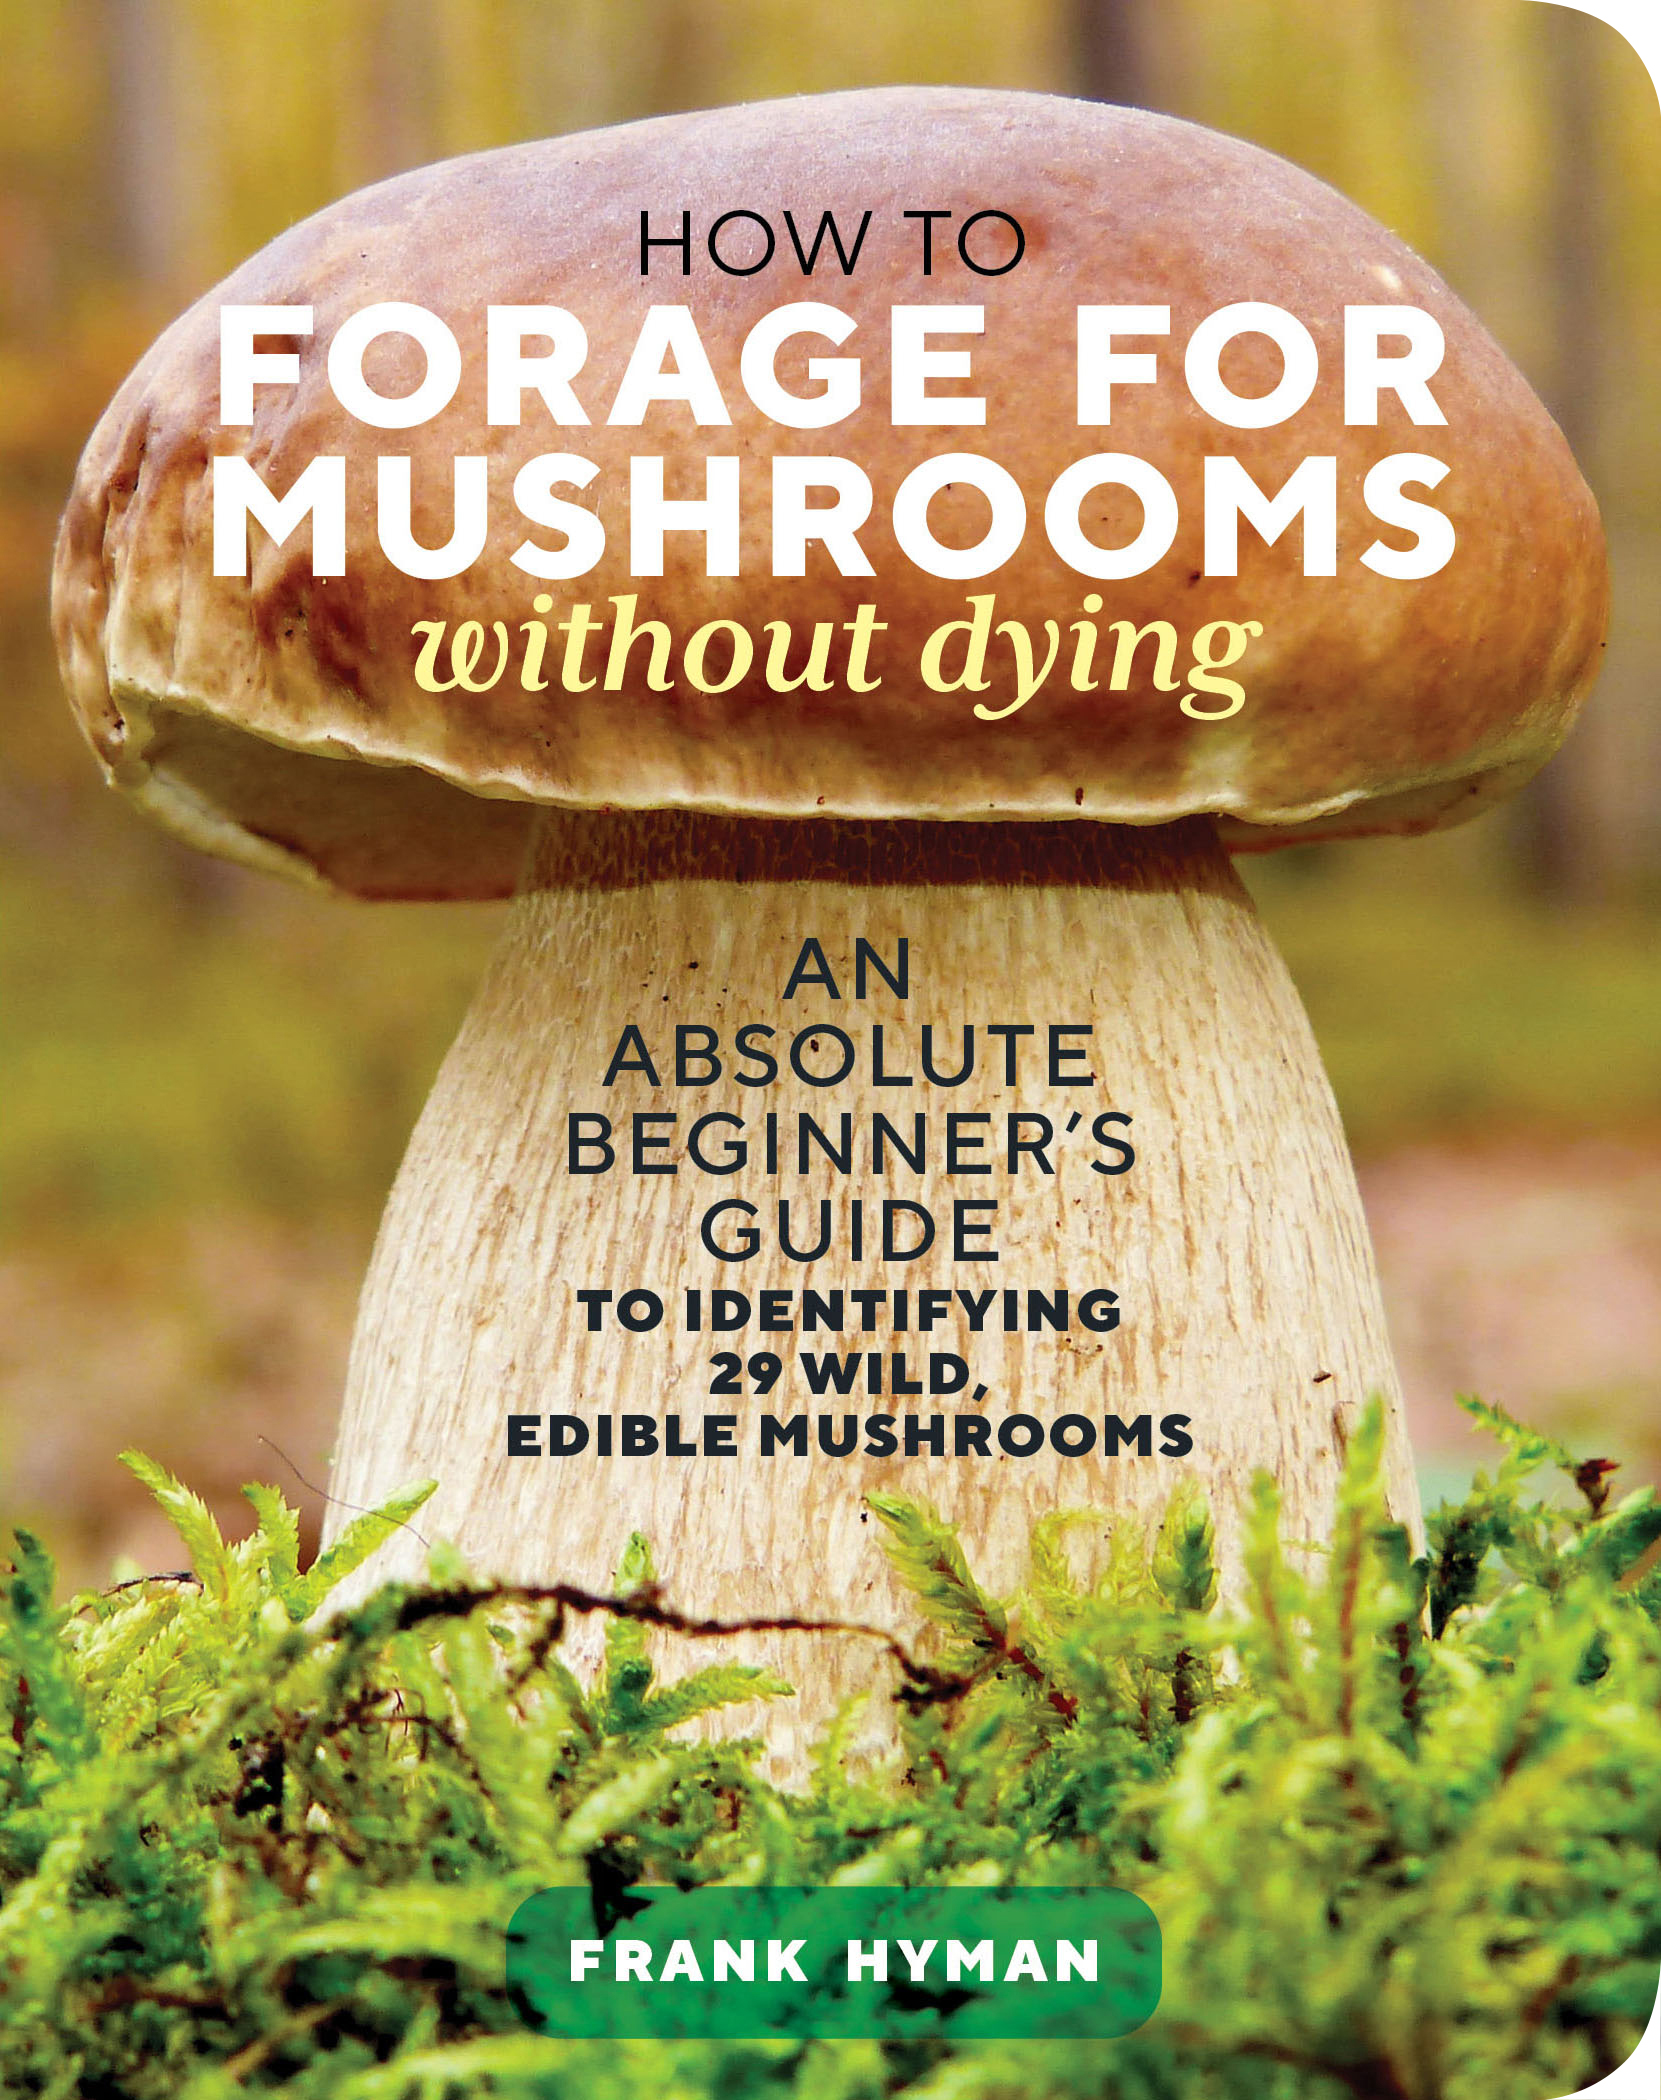 How to Forage for Mushrooms without Dying An Absolute Beginner's Guide to Identifying 29 Wild, Edible Mushrooms - Frank Hyman